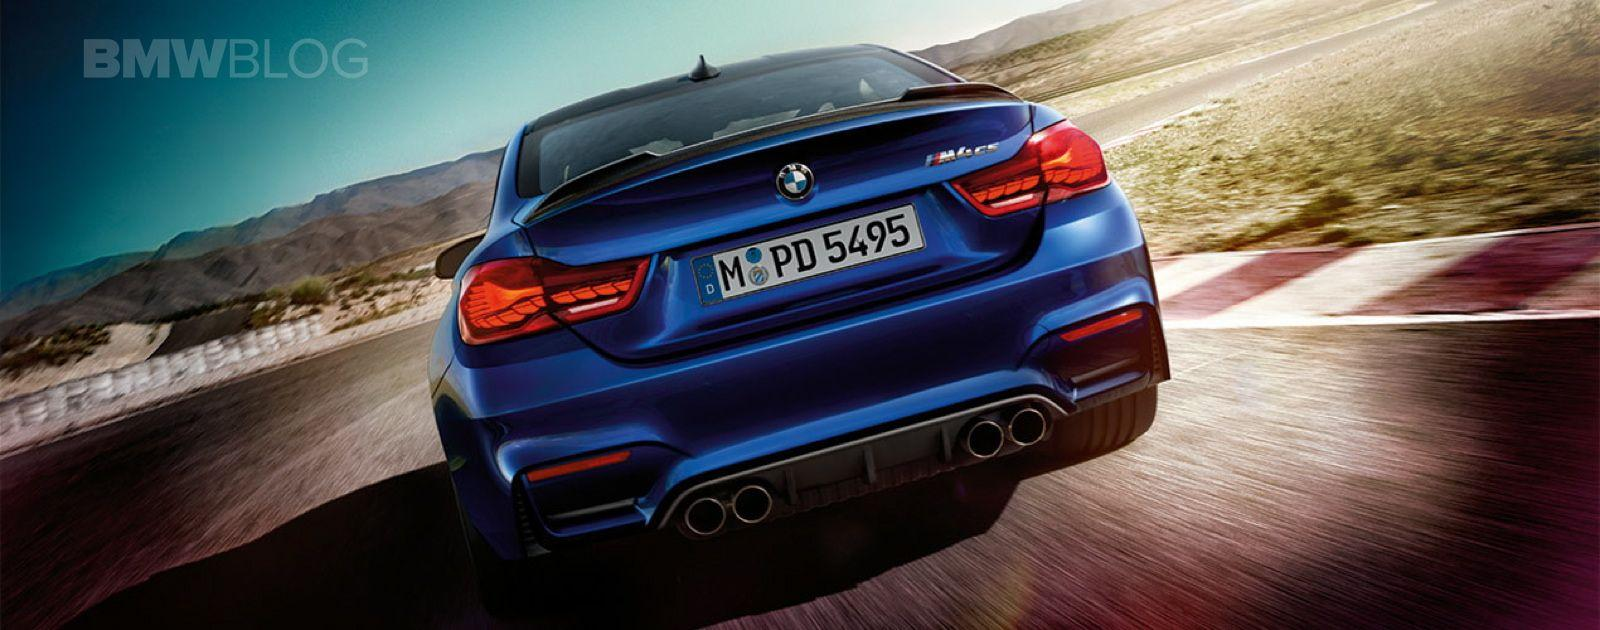 Bmw M4 Wallpapers Wallpaper Cave